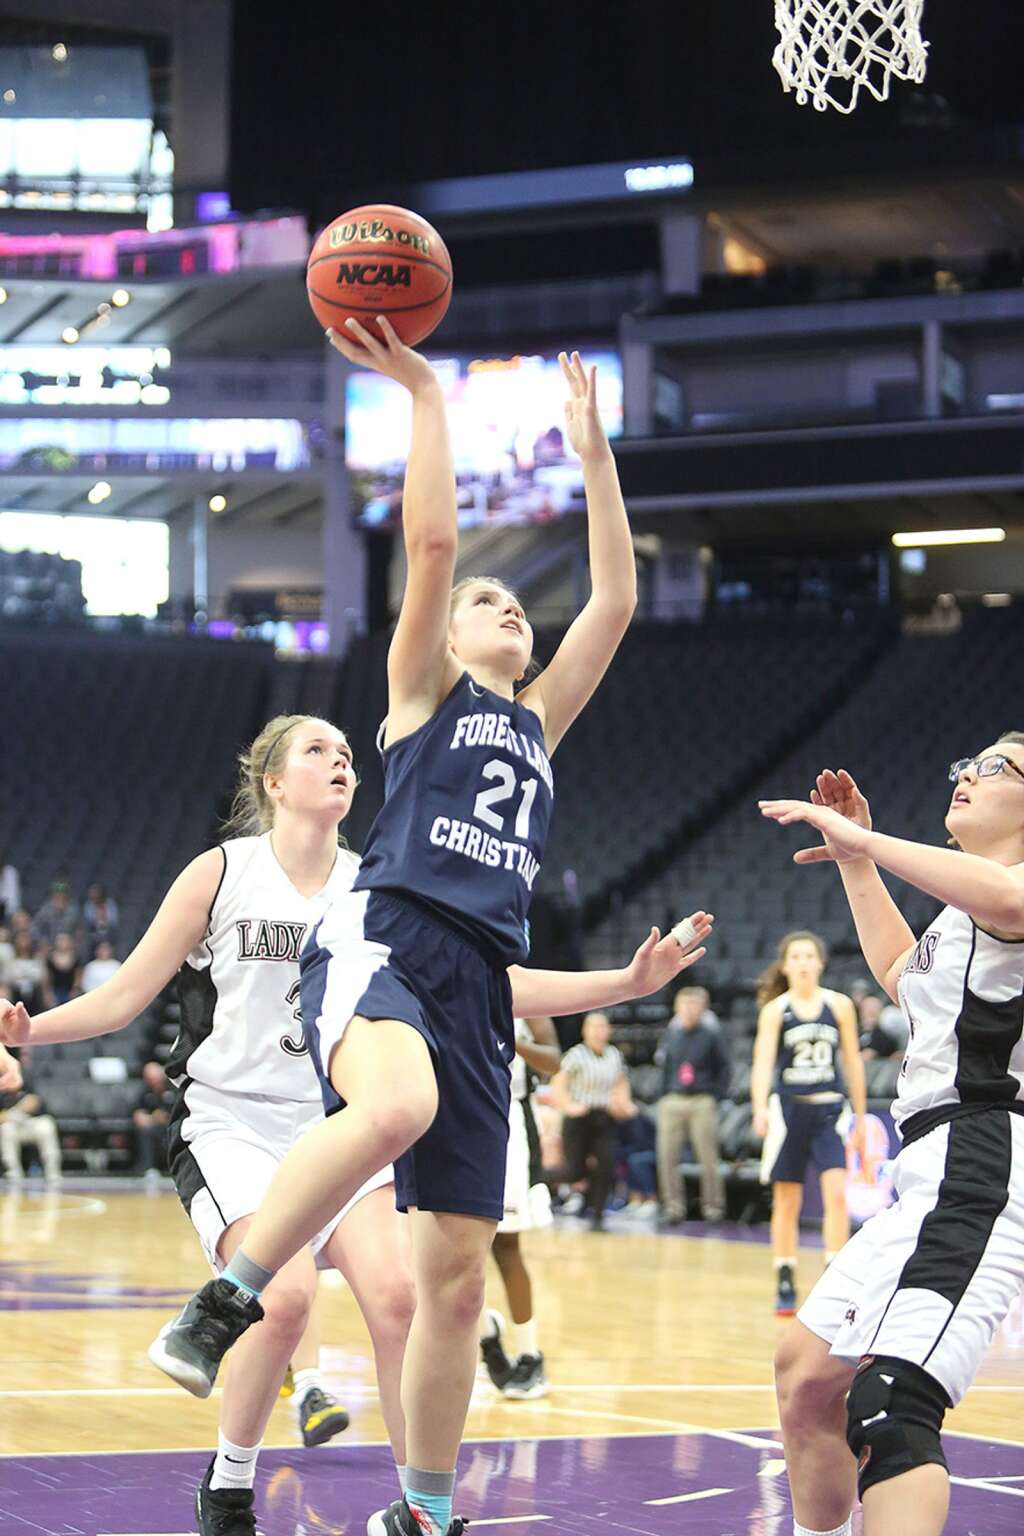 Forest Lake Christian's Ellie Wood (21) goes up for a lay-up against Valley Christian during a section title game at the Golden 1 Center in February. | Photo: Elias Funez